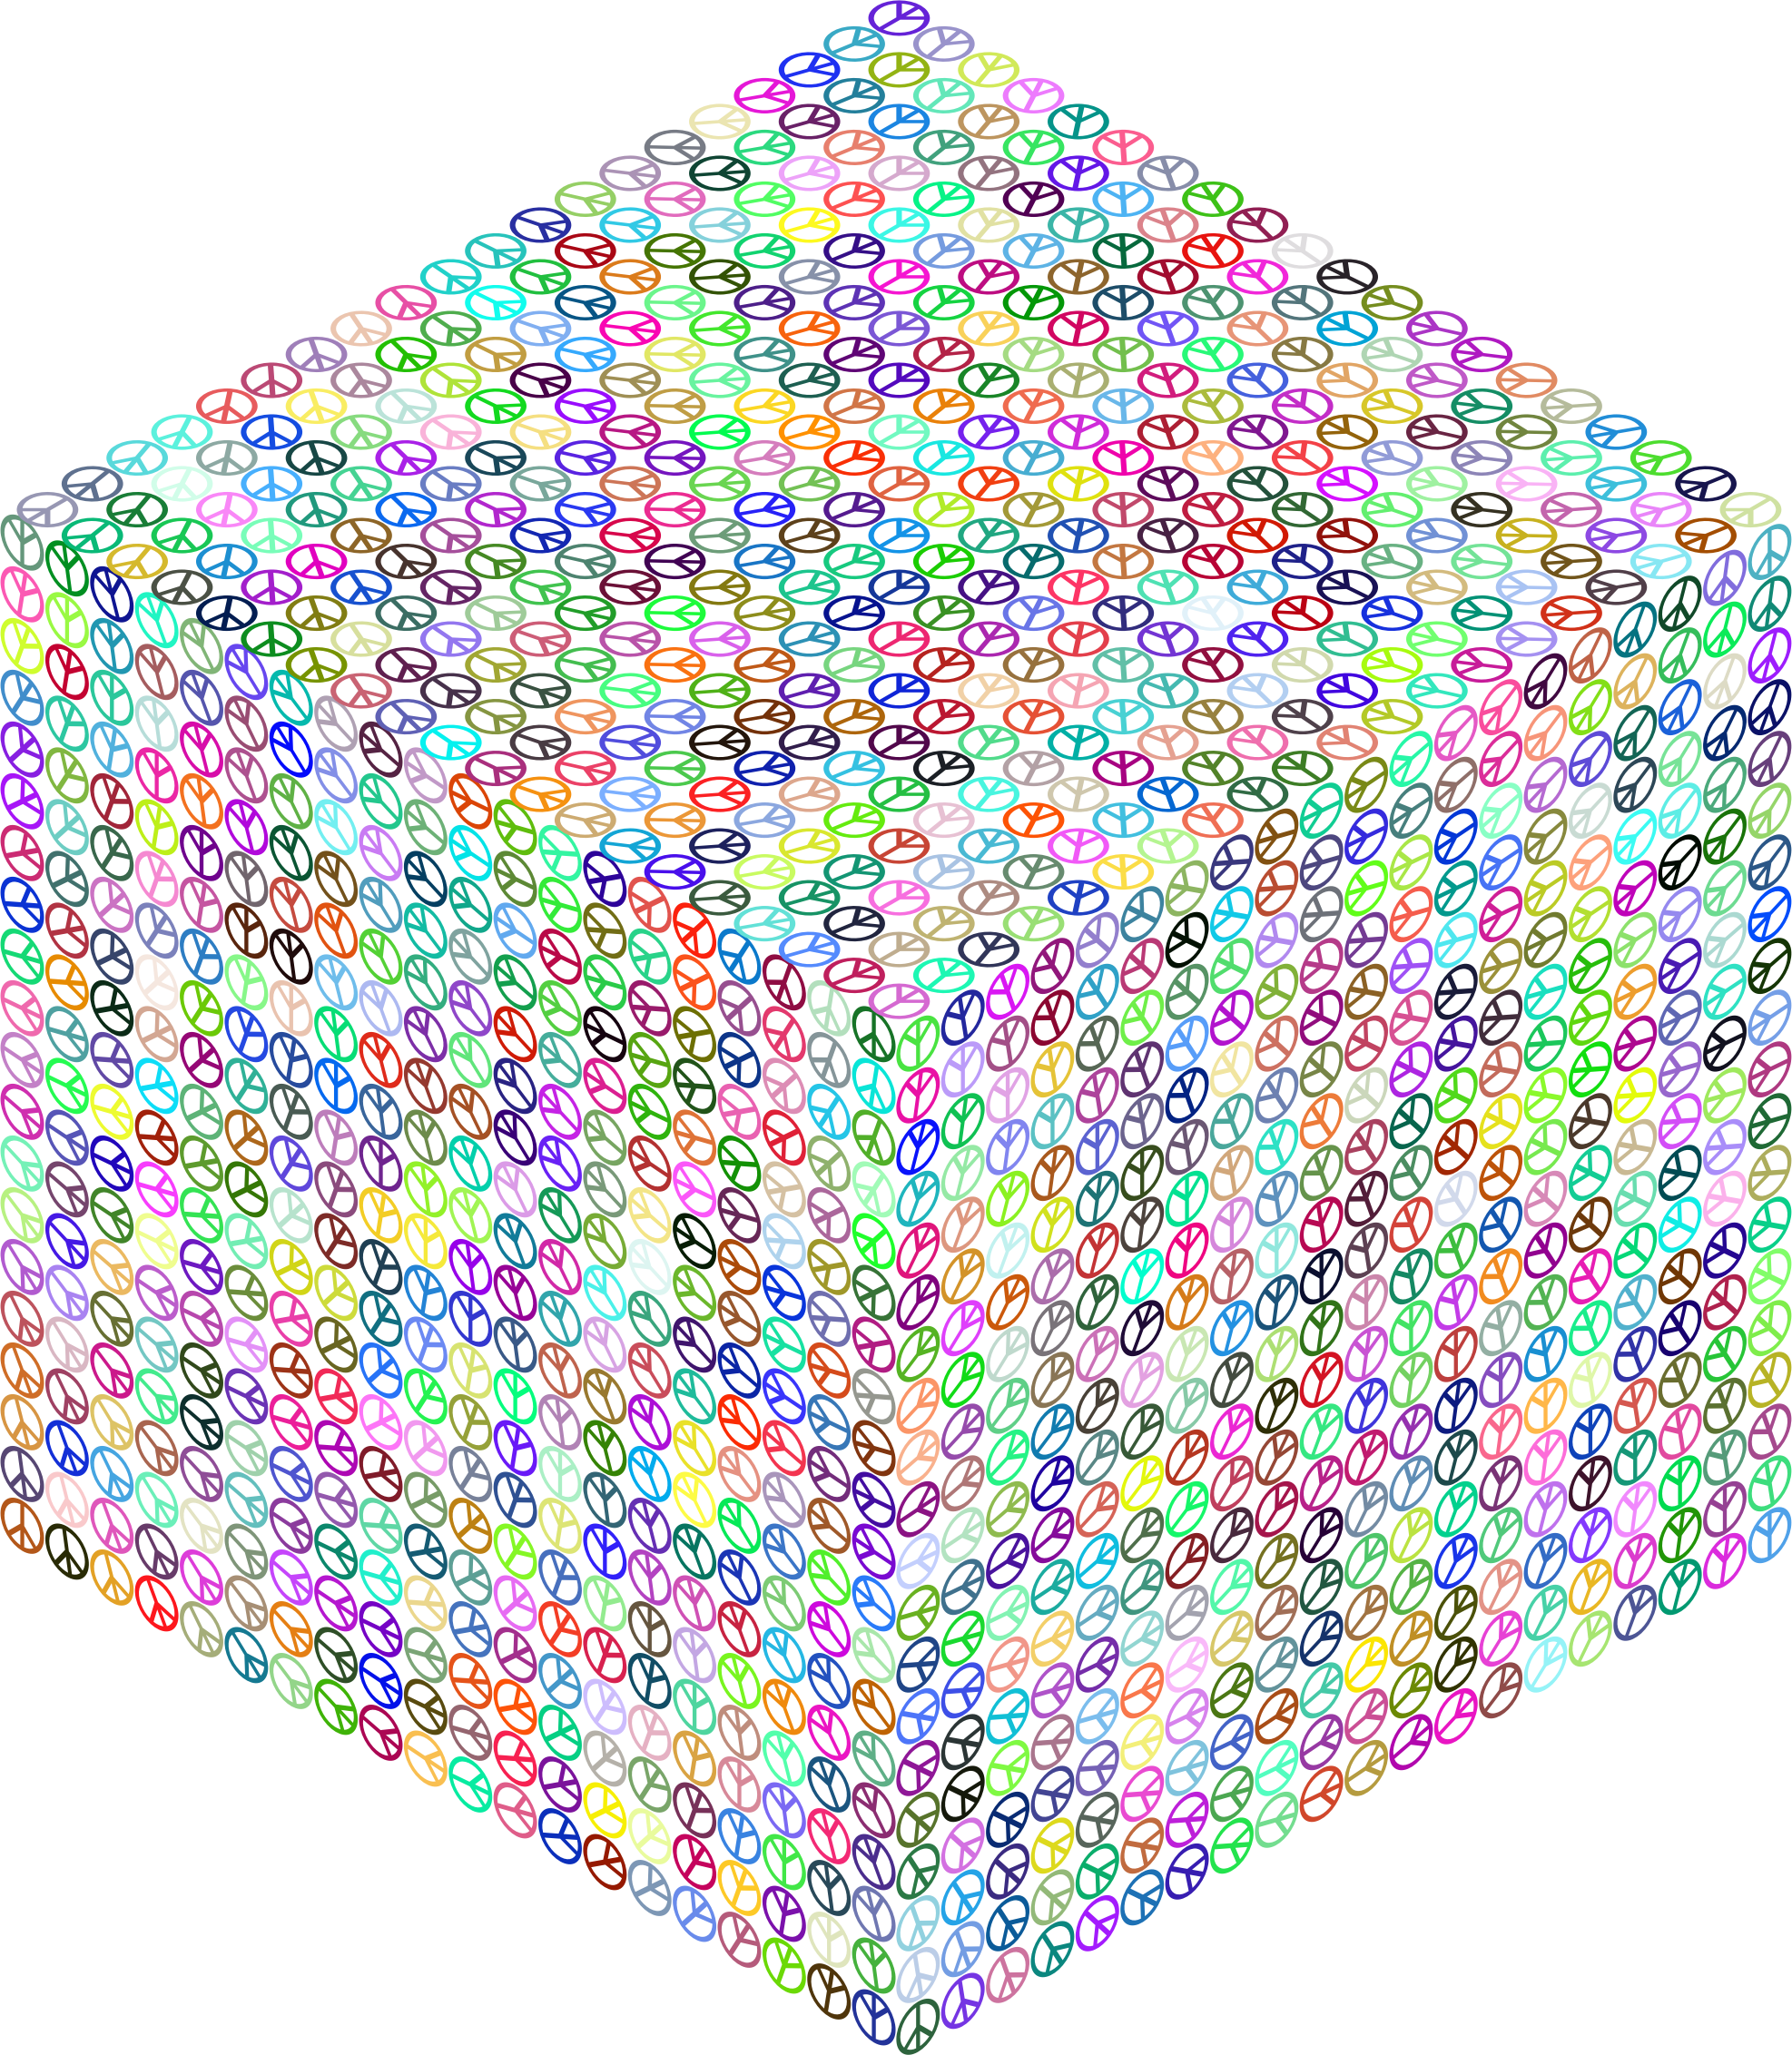 Isometric Peace Cube Prismatic No BG by GDJ